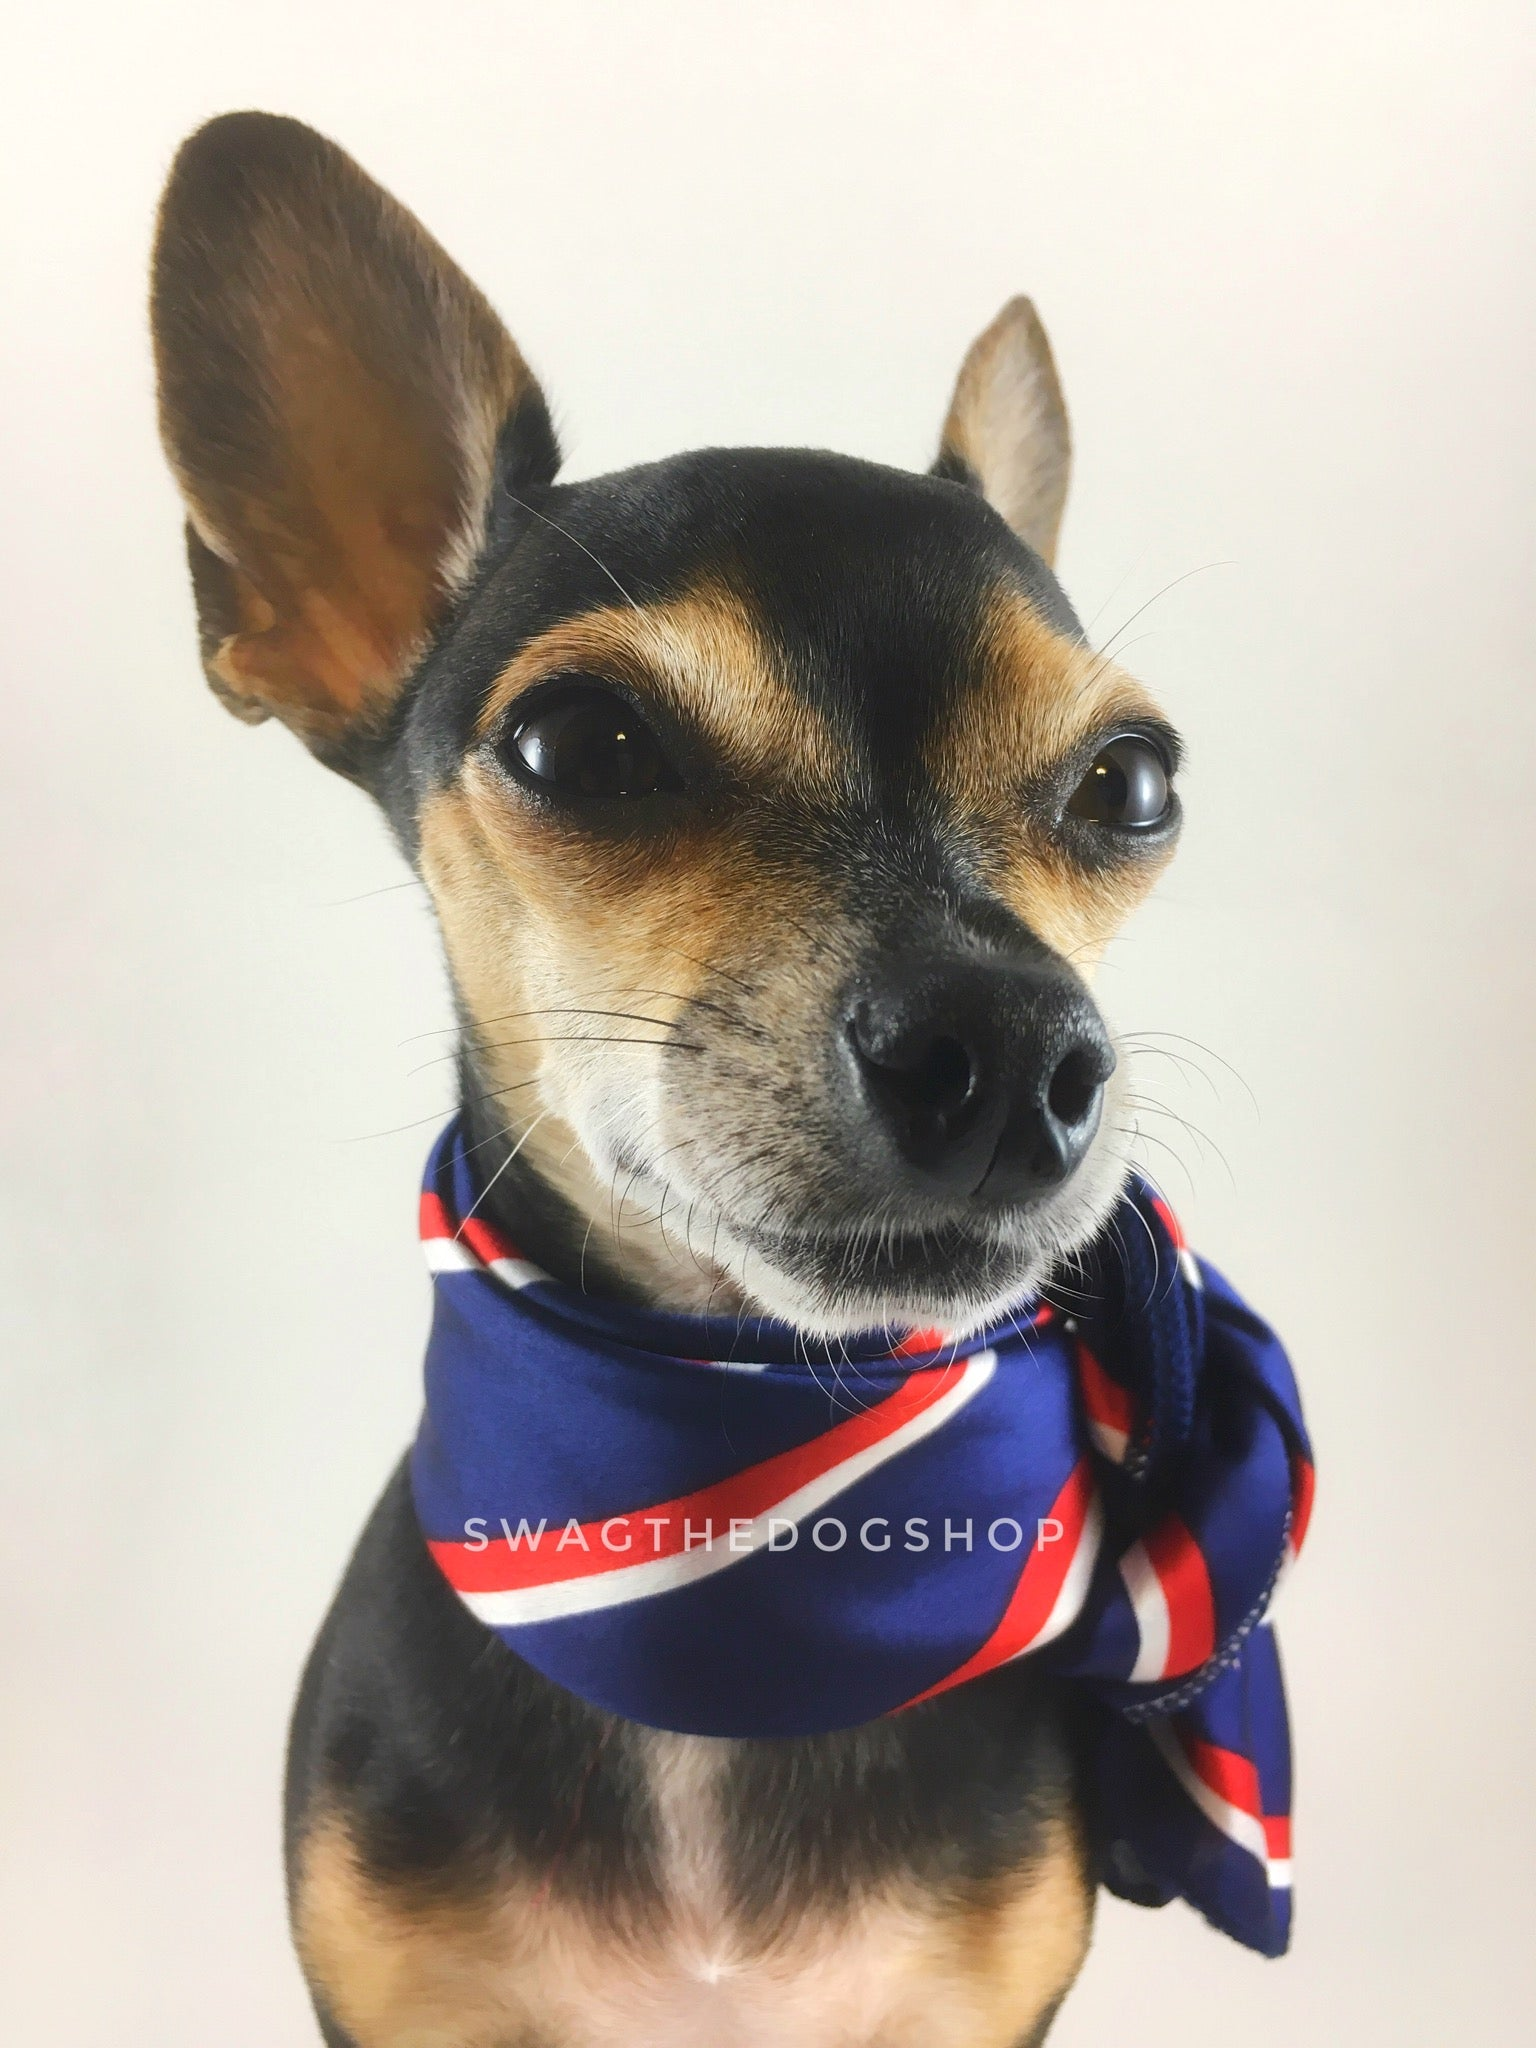 Afternoon in Paris Swagdana Scarf - Bust of Cute Chihuahua Wearing Swagdana Scarf as Neckerchief. Dog Bandana. Dog Scarf